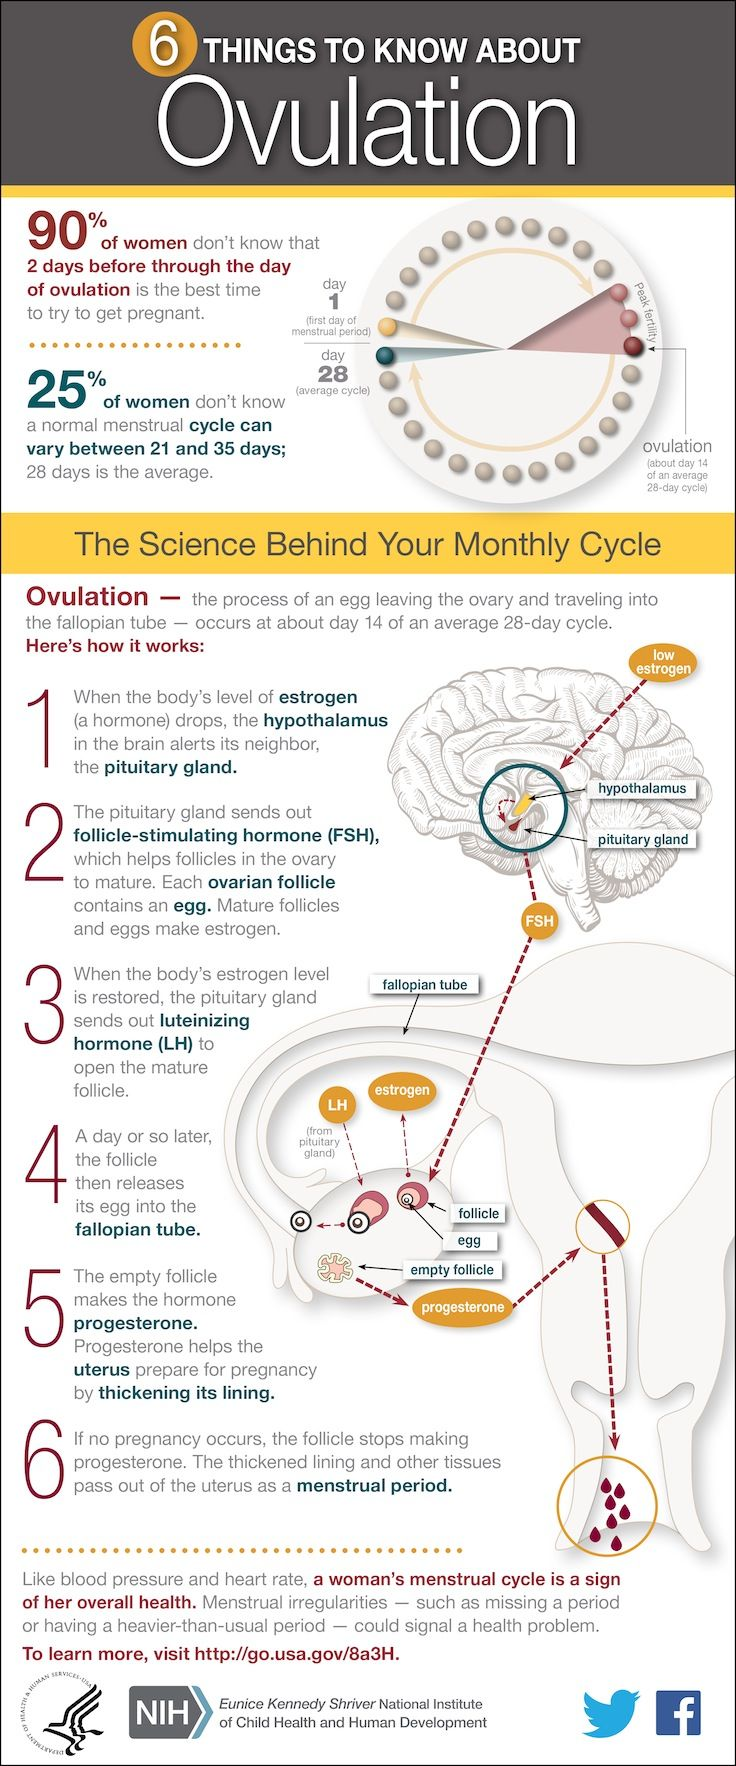 Learn the 6 things to know about ovulation with this infographic. Please come visit us at www.healthystartncf.org. Healthy Start offers free services to prenatal moms and babies age birth to three.